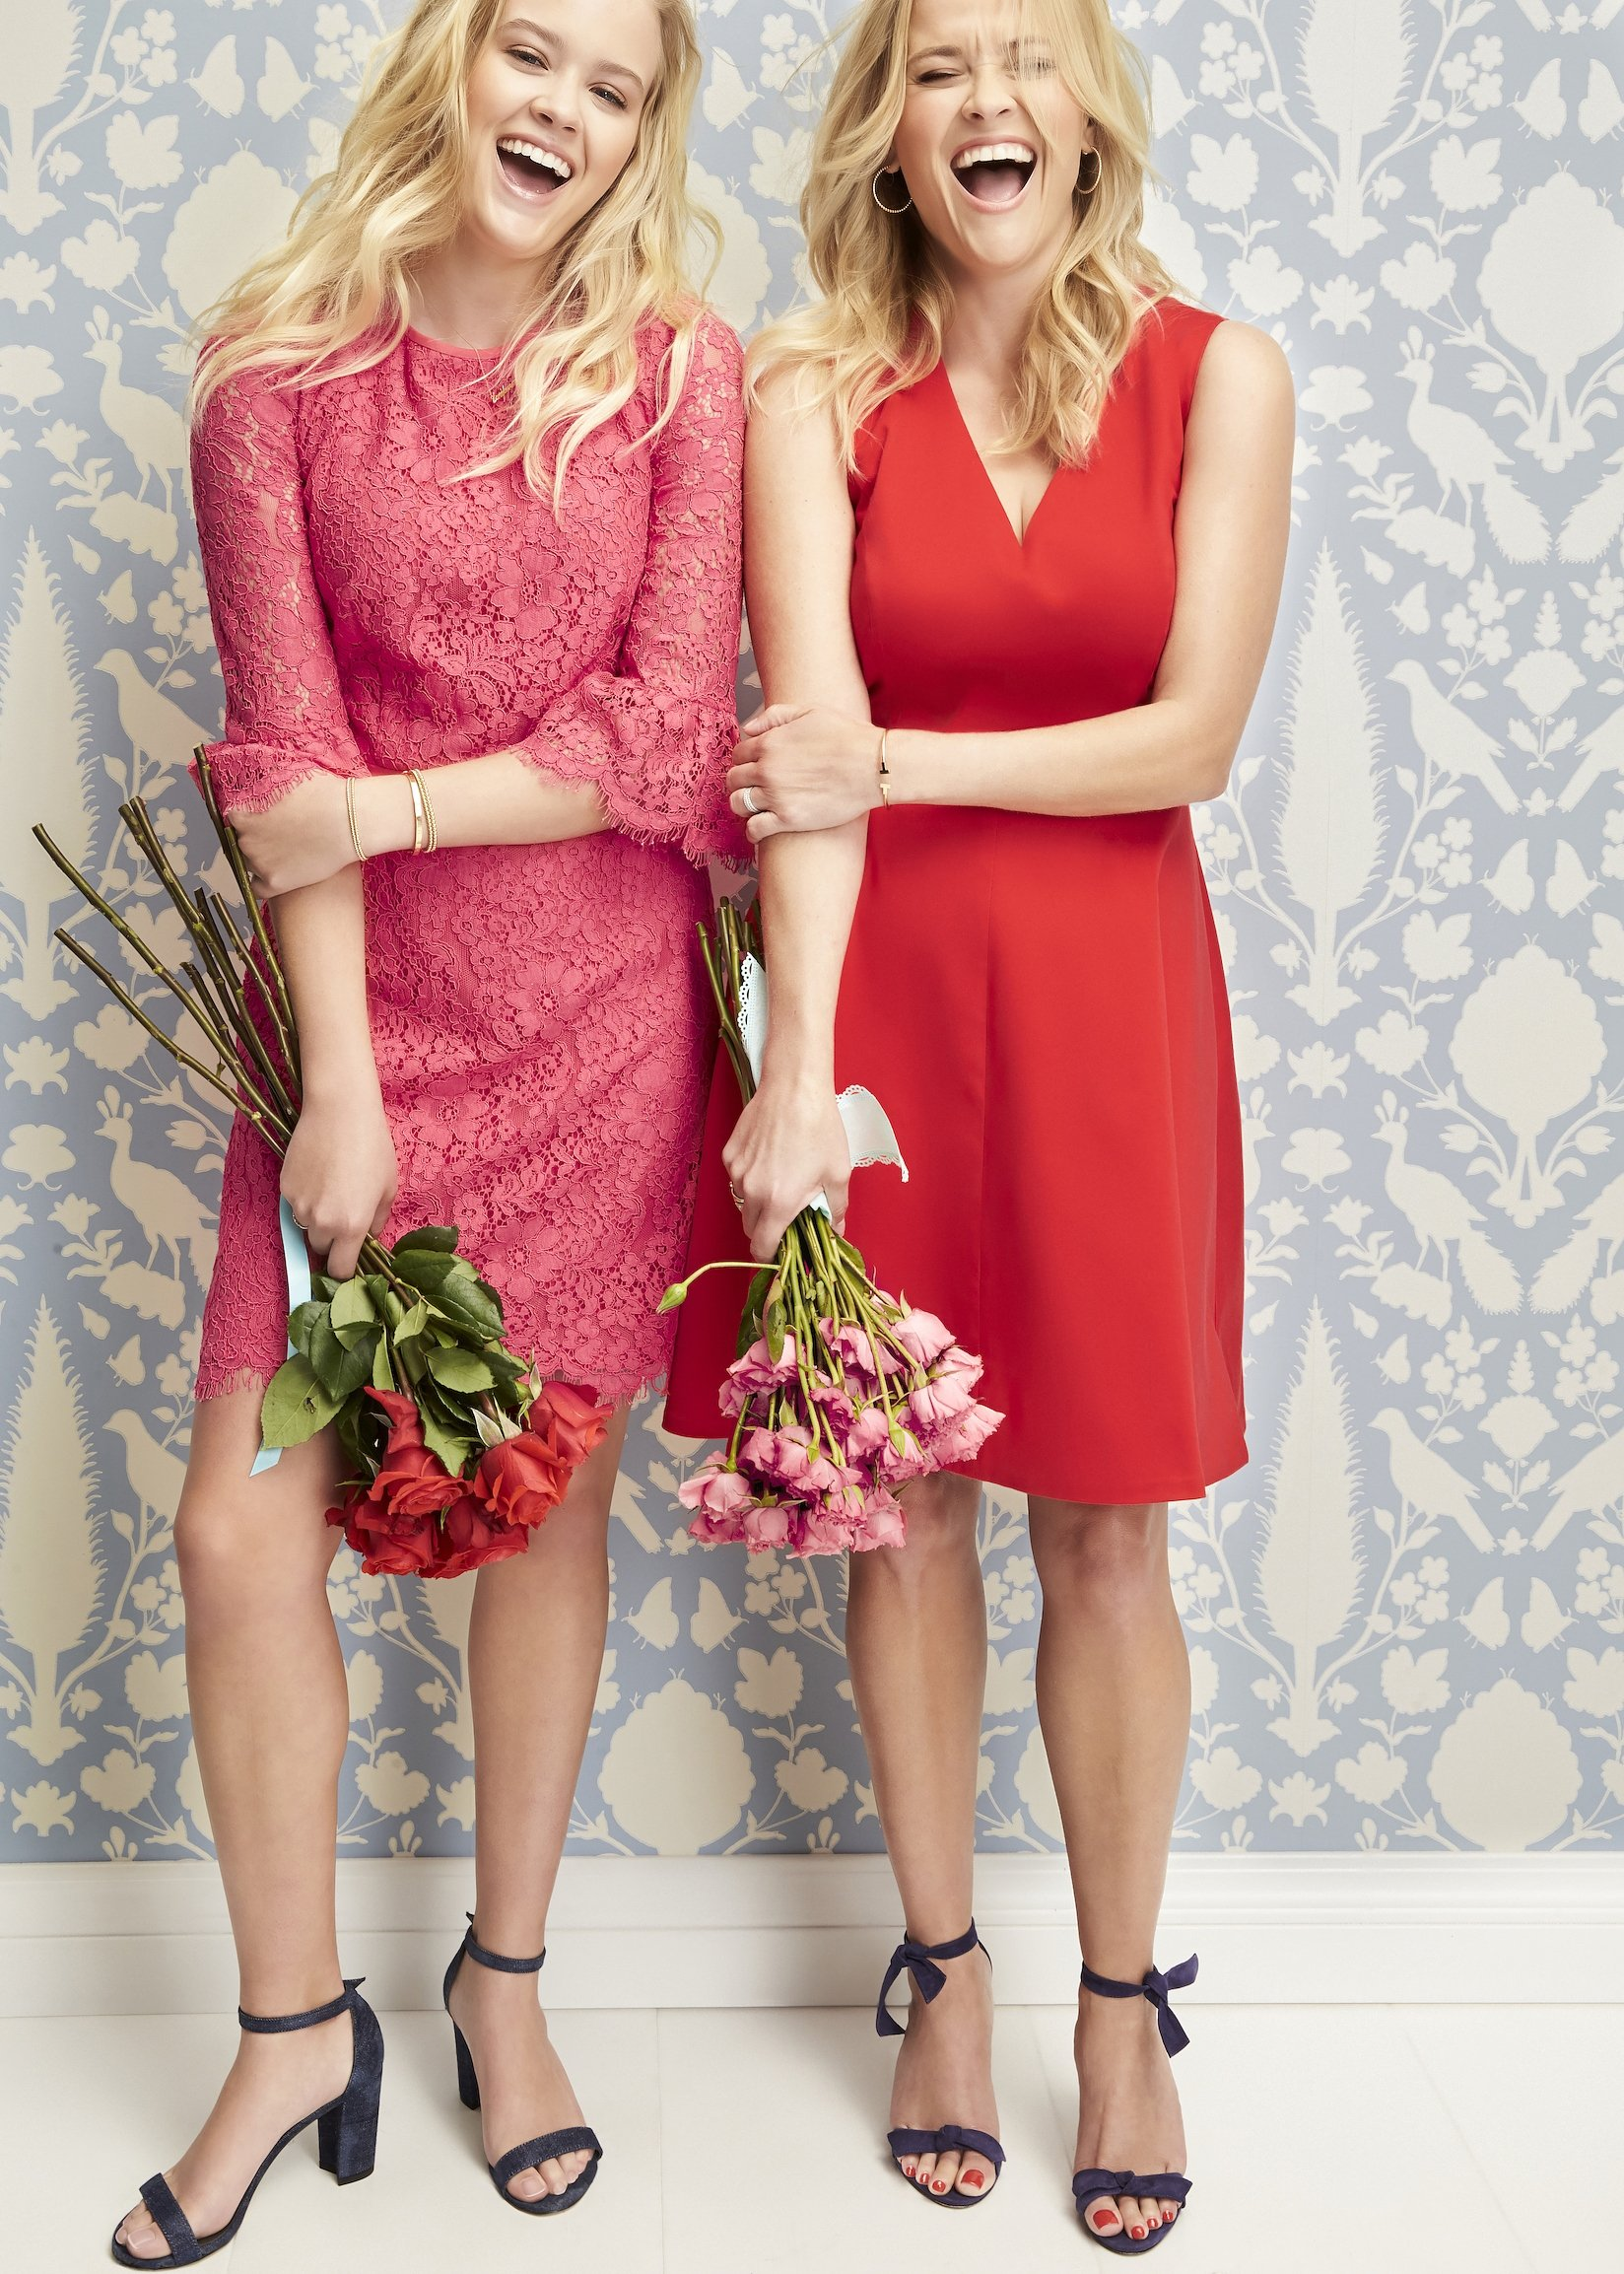 Reese Witherspoon and her daughter Ava Phillippe are a double threat in a new campaign for the Hollywood actresss clothing line, Draper James. The 41-year-old star enlisted the help of 18-year-old Ava to model some gorgeous clothes from the brands Valentines V-Day collection. The blonde beauties look Valentines chic in the photoshoot, wearing complimenting red and pink dresses, with Reeses sleeveless number retailing for 5. Ava  whose father in actor Ryan Phillippe, also models and cool tee with a heart print, which costs . Talking about doing the photoshoot together, Reese said: I thought it might be fun to focus on Mother/Daughter love this Spring.  There is nothing like the love I have for my daughter. We share every emotion with each other, our hopes, and dreams& We can talk for hours. Ava added: I love being around my mom, and this shoot was an opportunity to have fun and support her work as a female entrepreneur.  She also brings a lot of comfort and positive energy with her to work, and I think its inspiring to see her personal relationships with everybody on set.  I had a great time being a part of the shoot with the bonus of having even more mother/daughter pictures!. 01 Feb 2018, Image: 362073290, License: Rights-managed, Restrictions: World Rights, Model Release: no, Credit line: Profimedia, Mega Agency